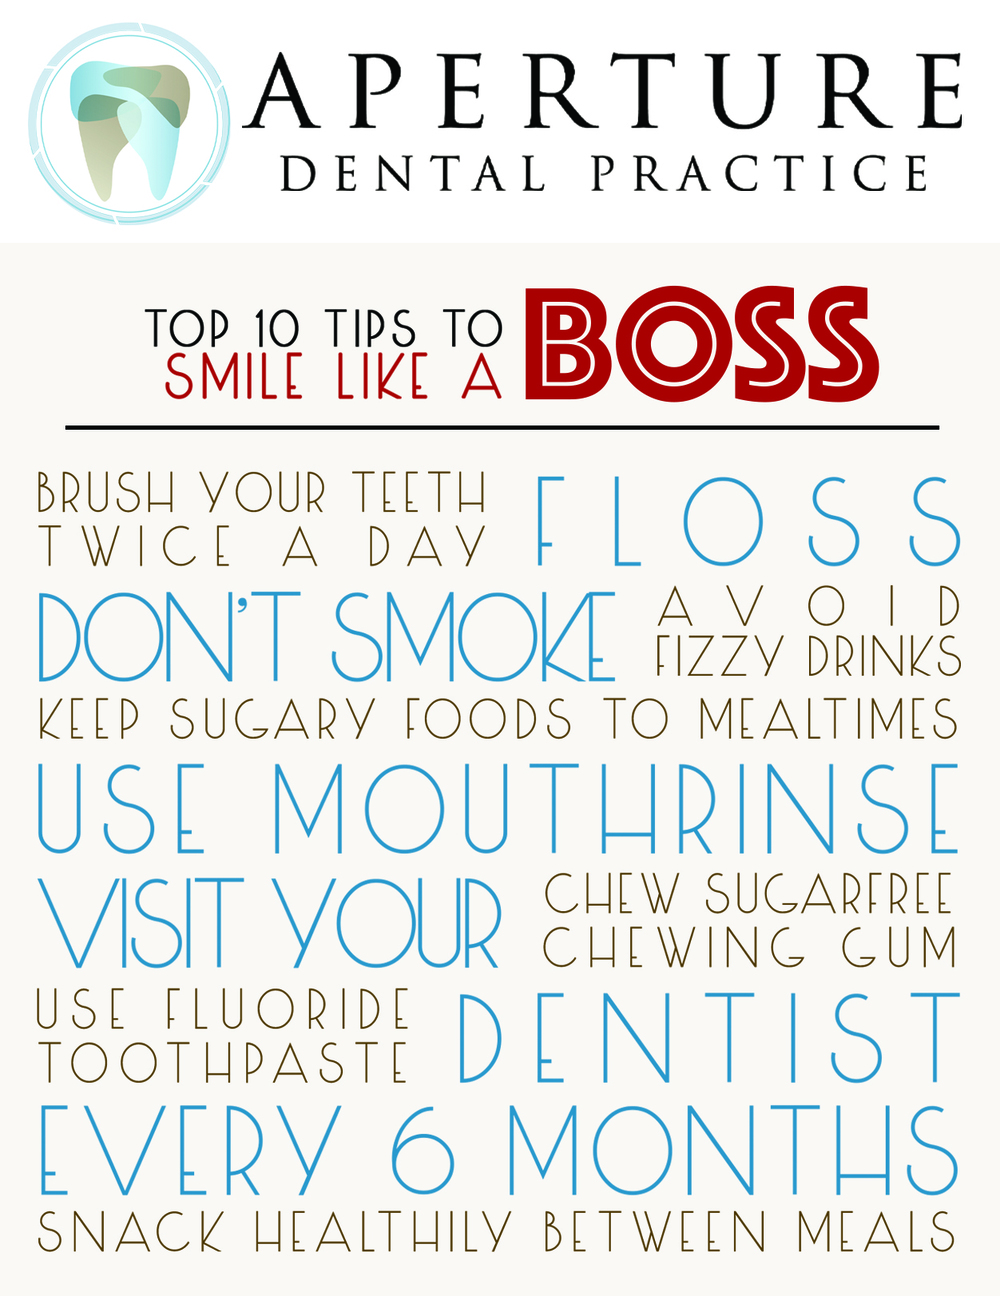 Aperture Dental Practice's top 10 tips to smile like a boss